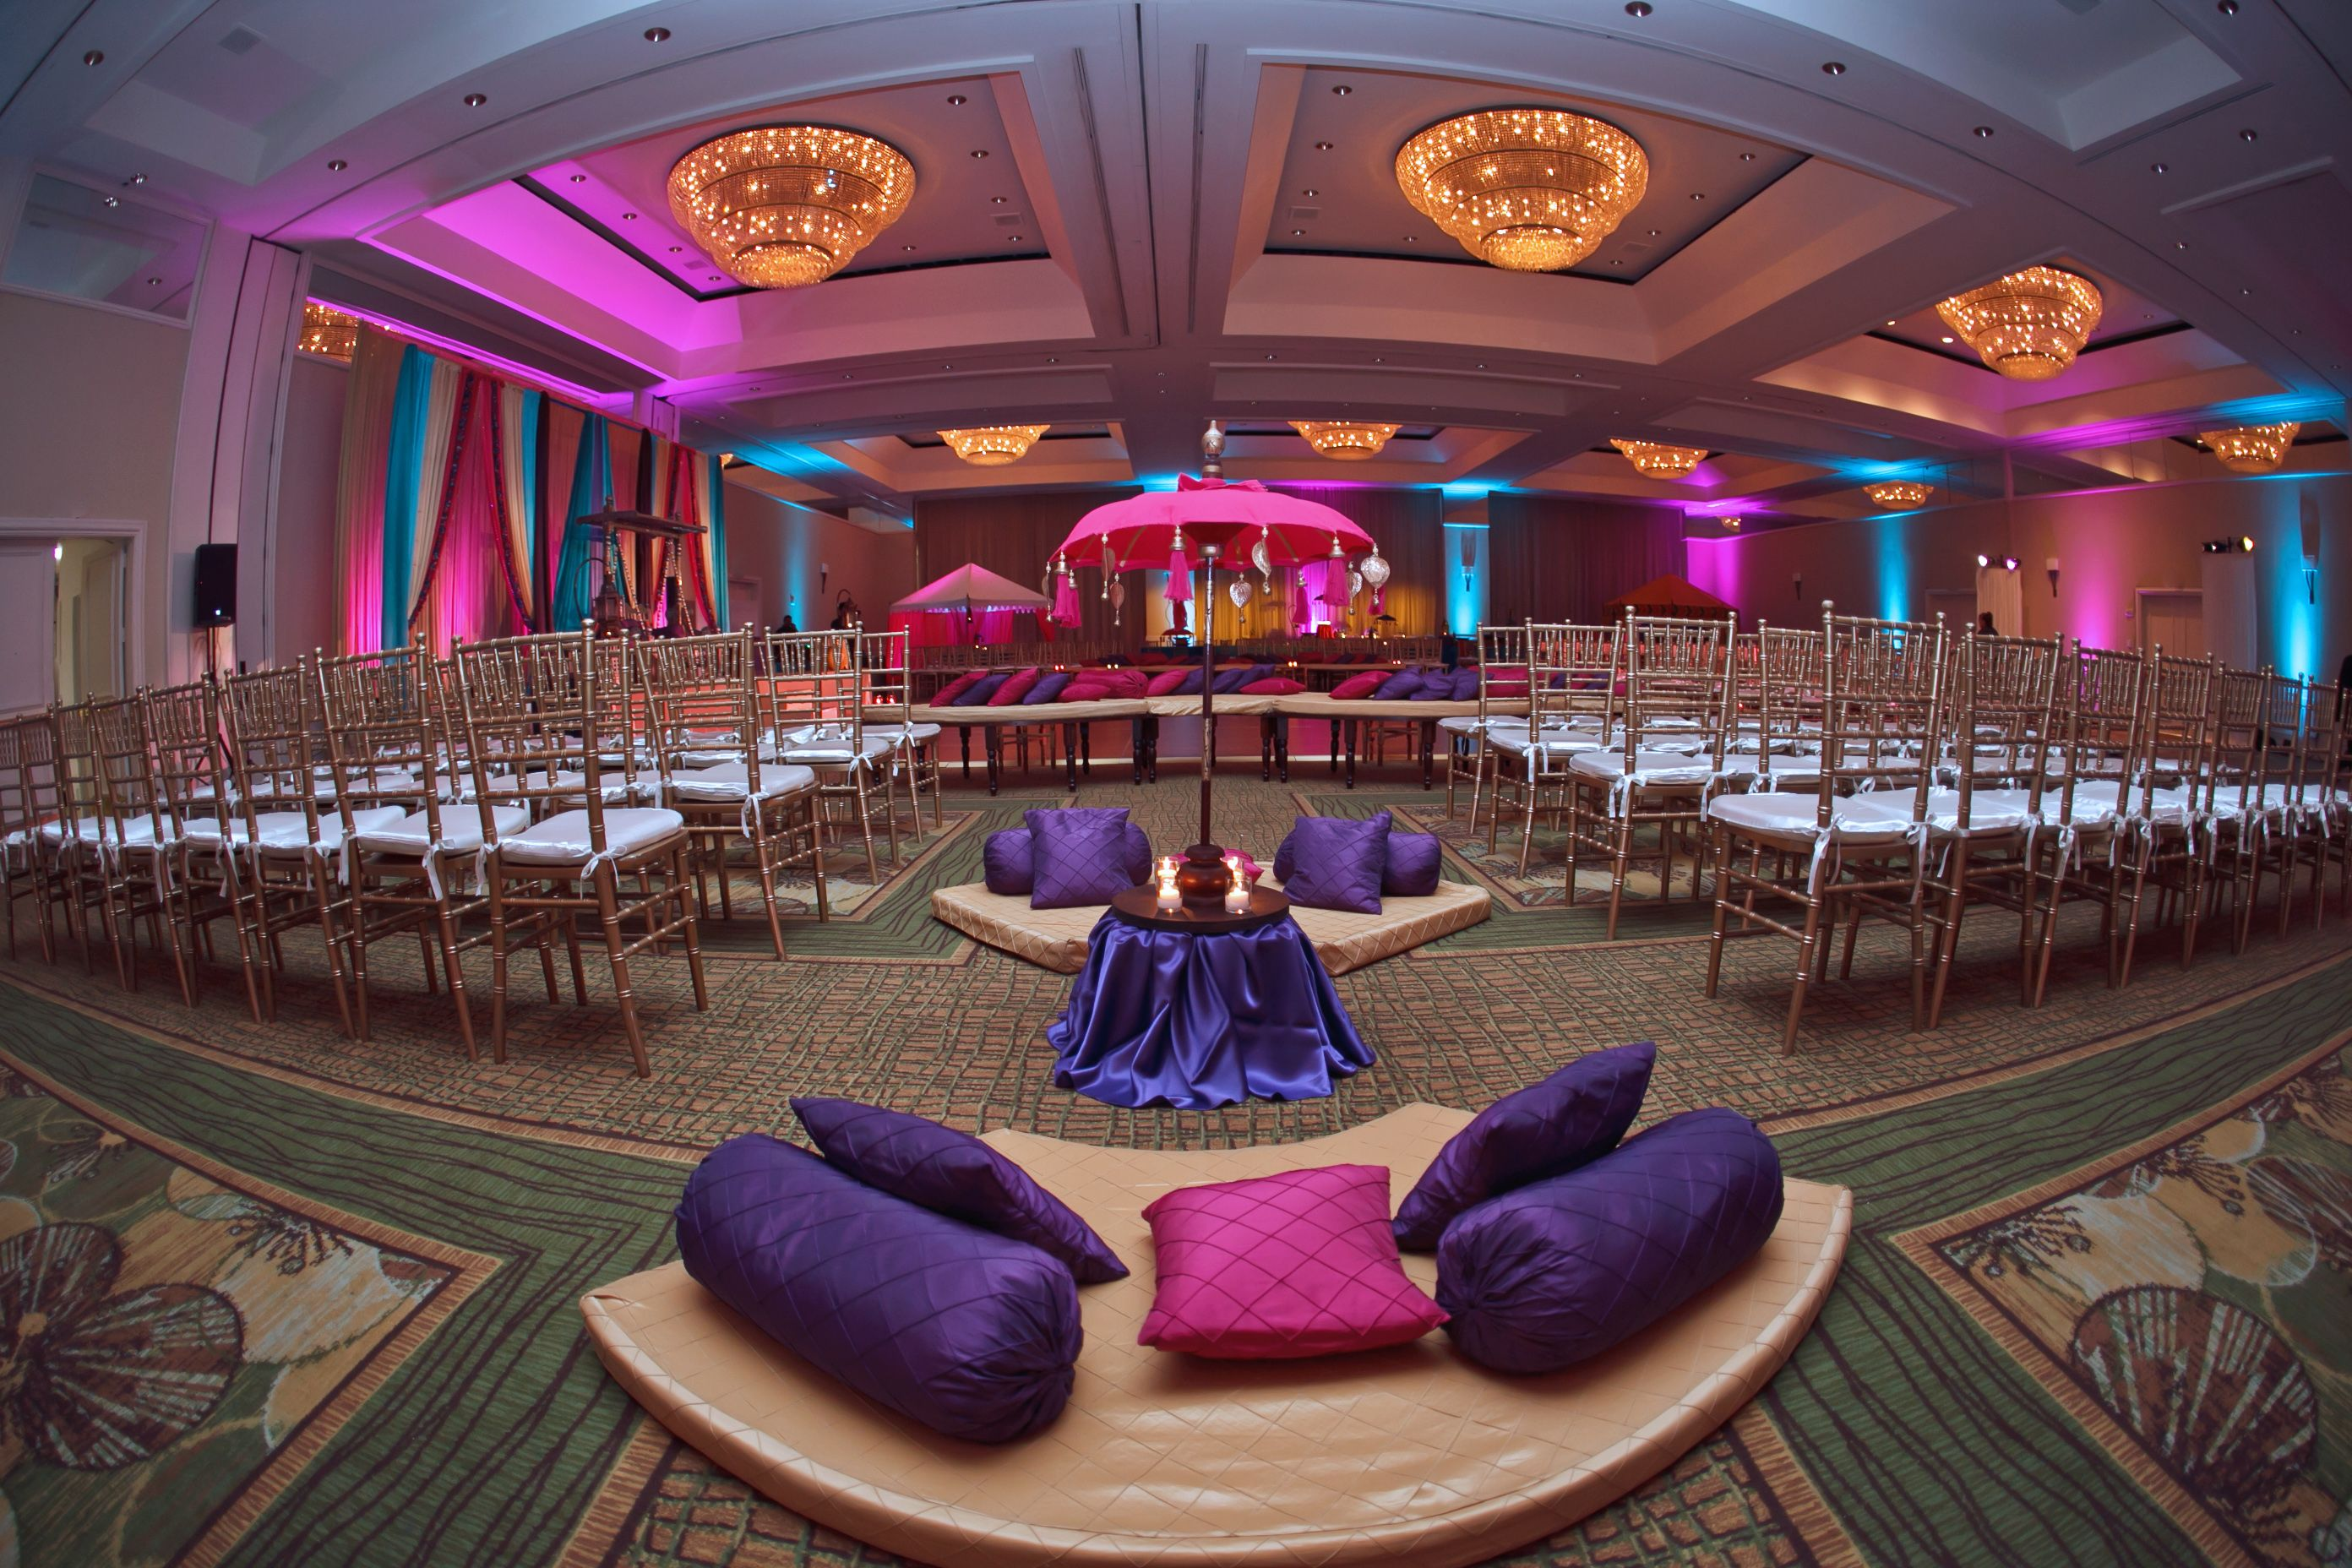 Grand hyatt tampa bay wedding venue in tampa fl south asian grand hyatt tampa bay wedding venue in tampa fl south asian wedding junglespirit